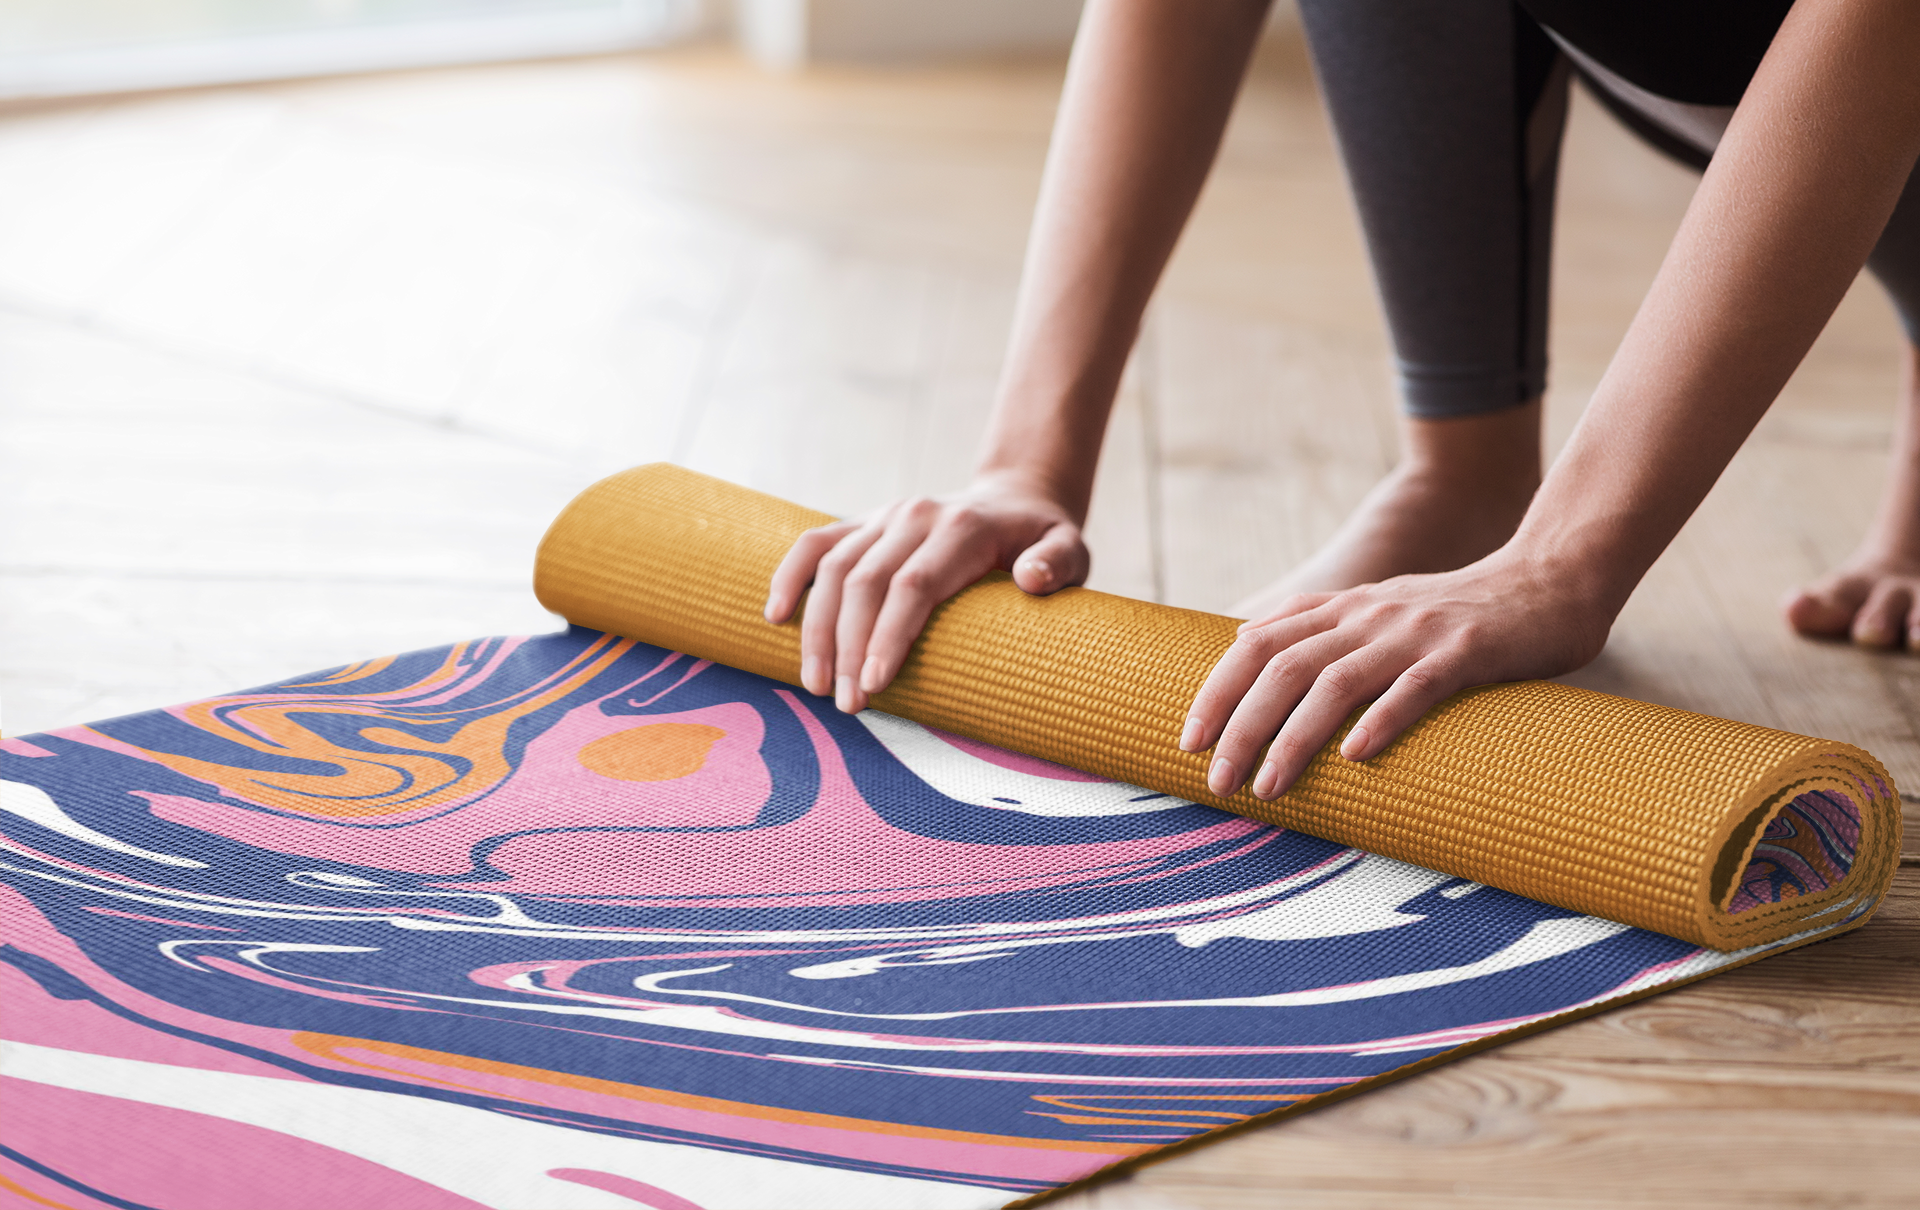 mockup-of-a-woman-rolling-up-her-sublimated-yoga-mat-37074-r-el2